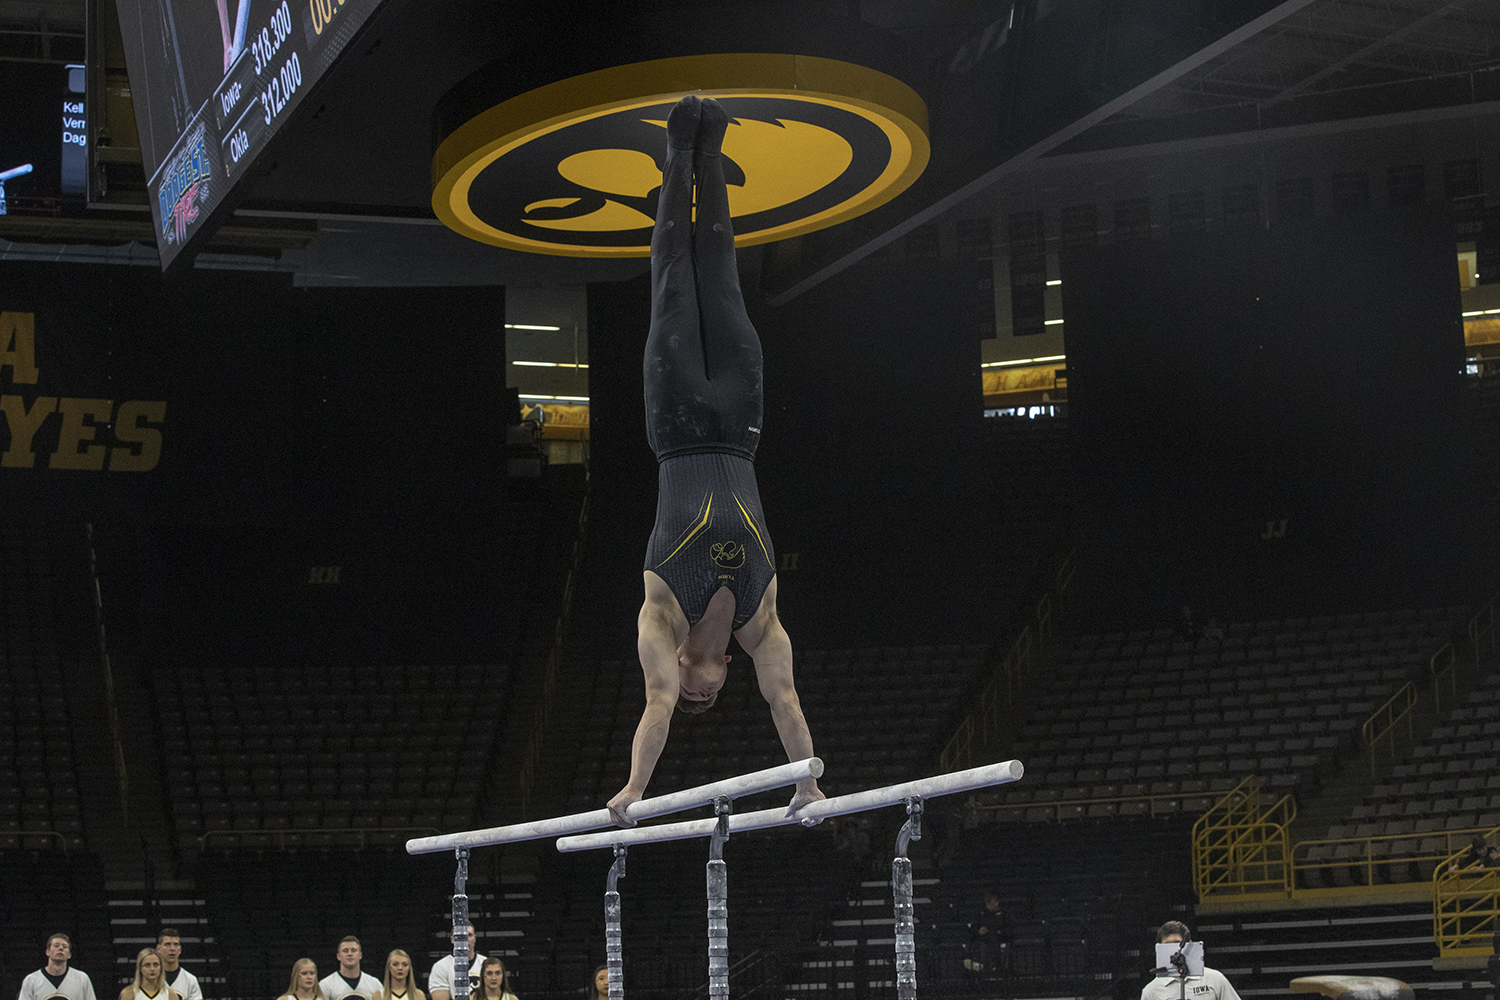 Stewart Brown competes on parallel bars on February 9, 2019 at Carver Hawkeye Arena vs. Oklahoma University. The Oklahoma Sooners won the meet with a total score of 405.150 over the Hawkeyes scoring 397.750.